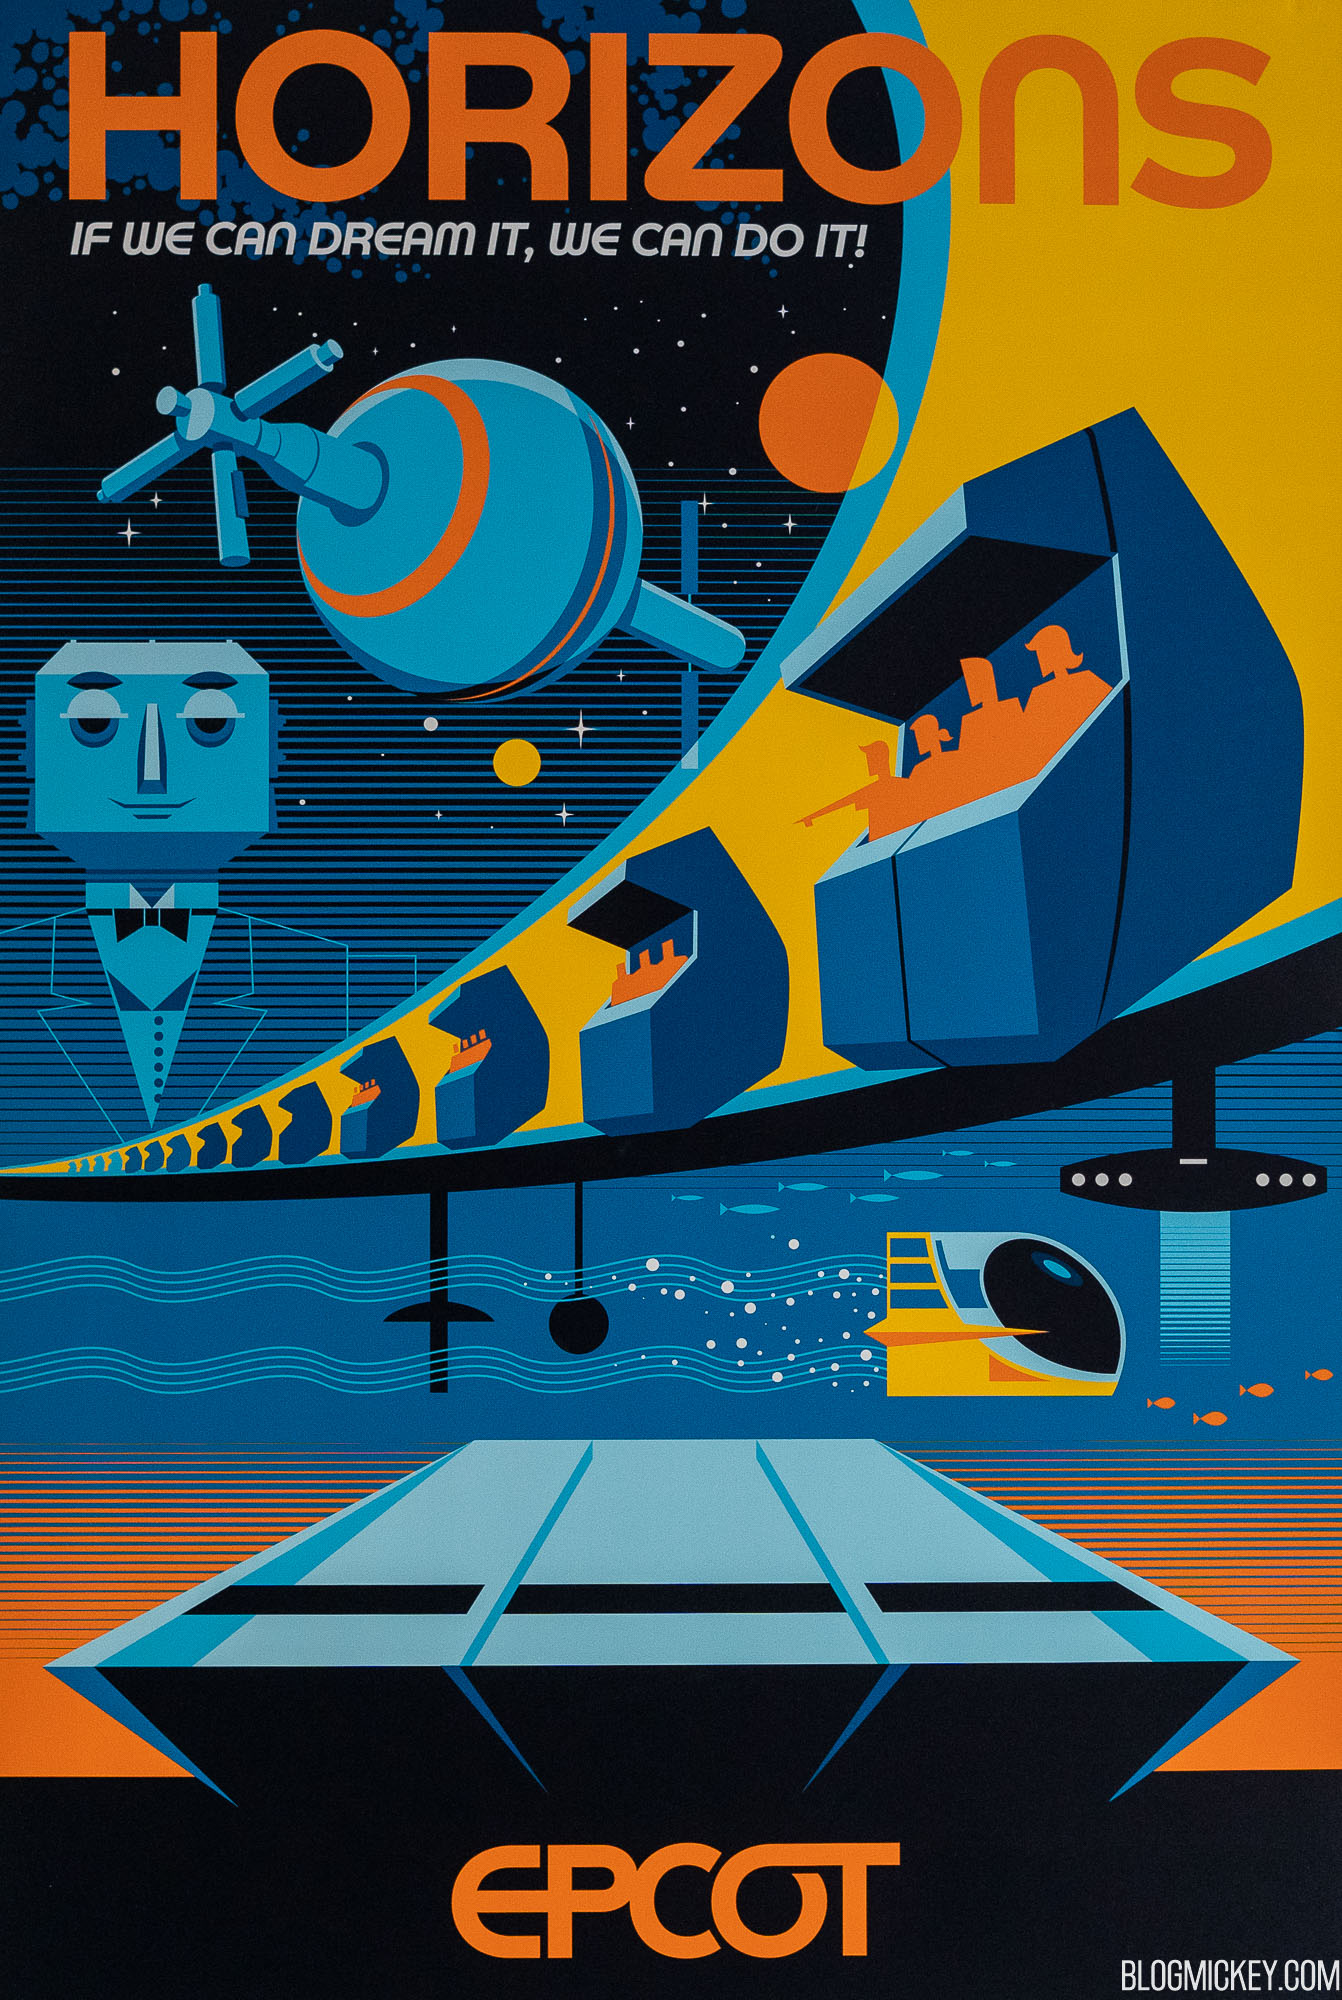 epcot-experience-attraction-poster-horizons-1.jpg